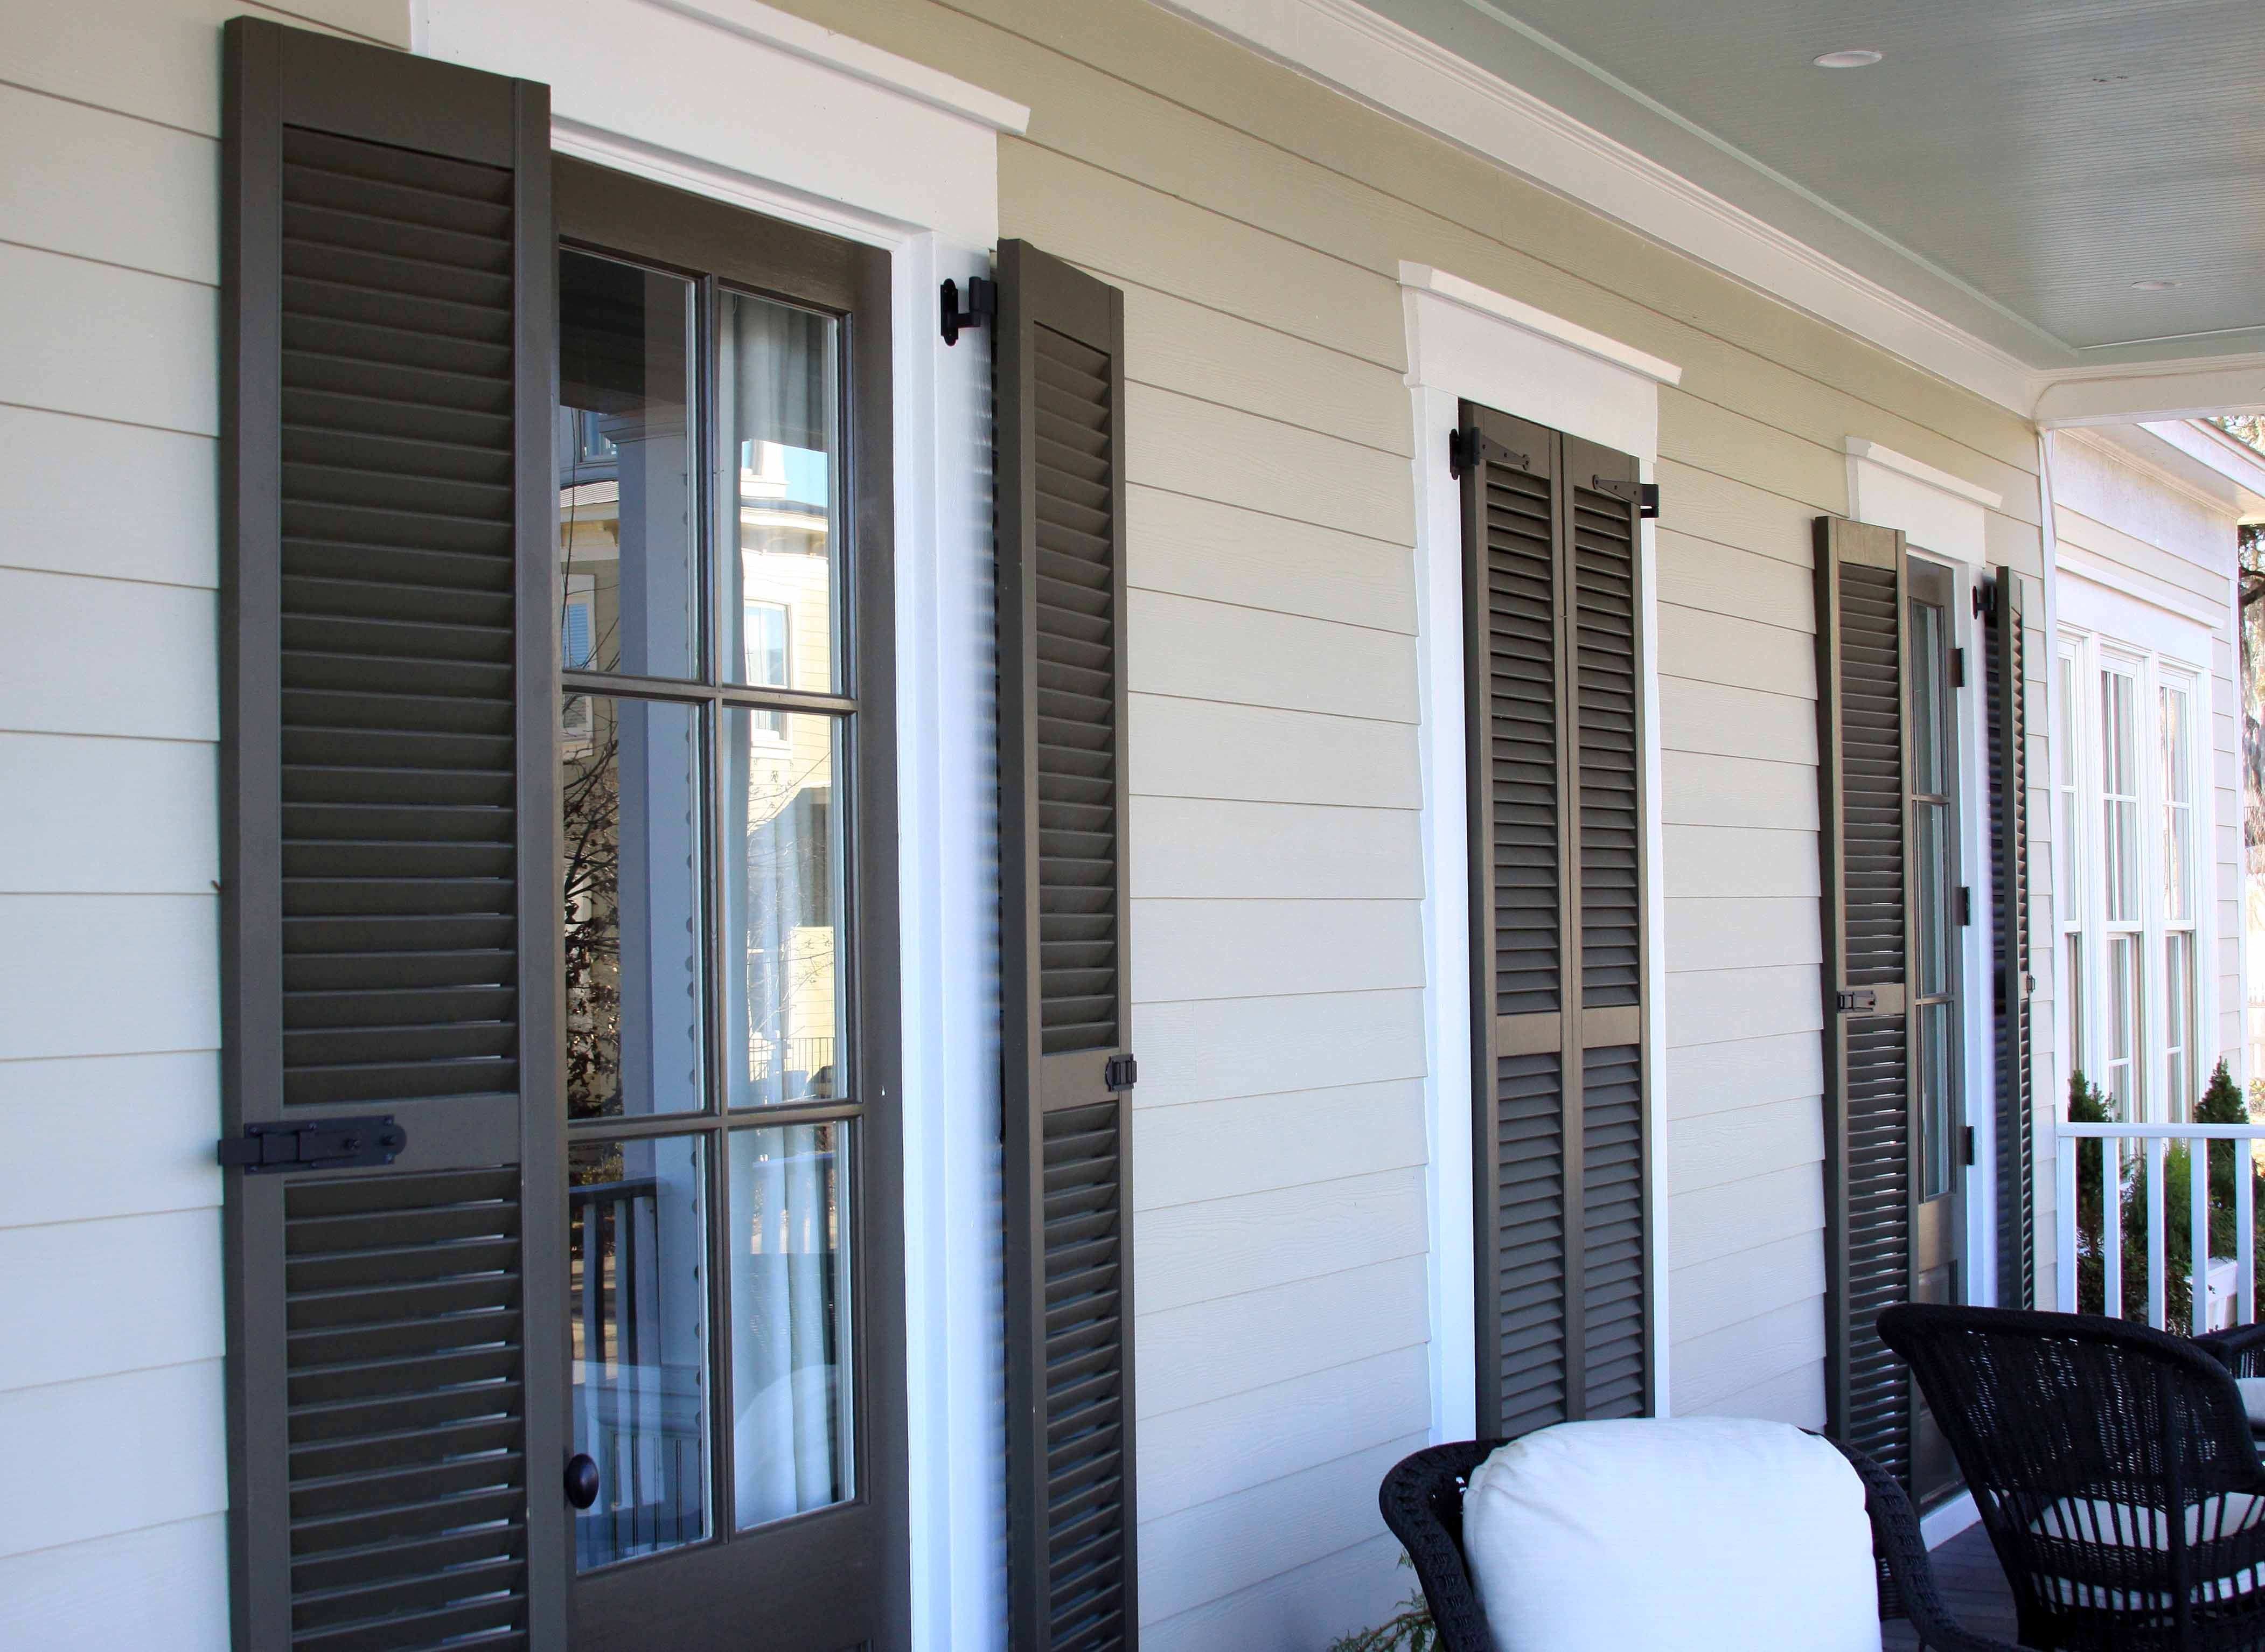 Exterior Moveable Louver Shutters | Exterior Shutter Ideas | Pinterest |  Cedar shutters and Exterior shutters